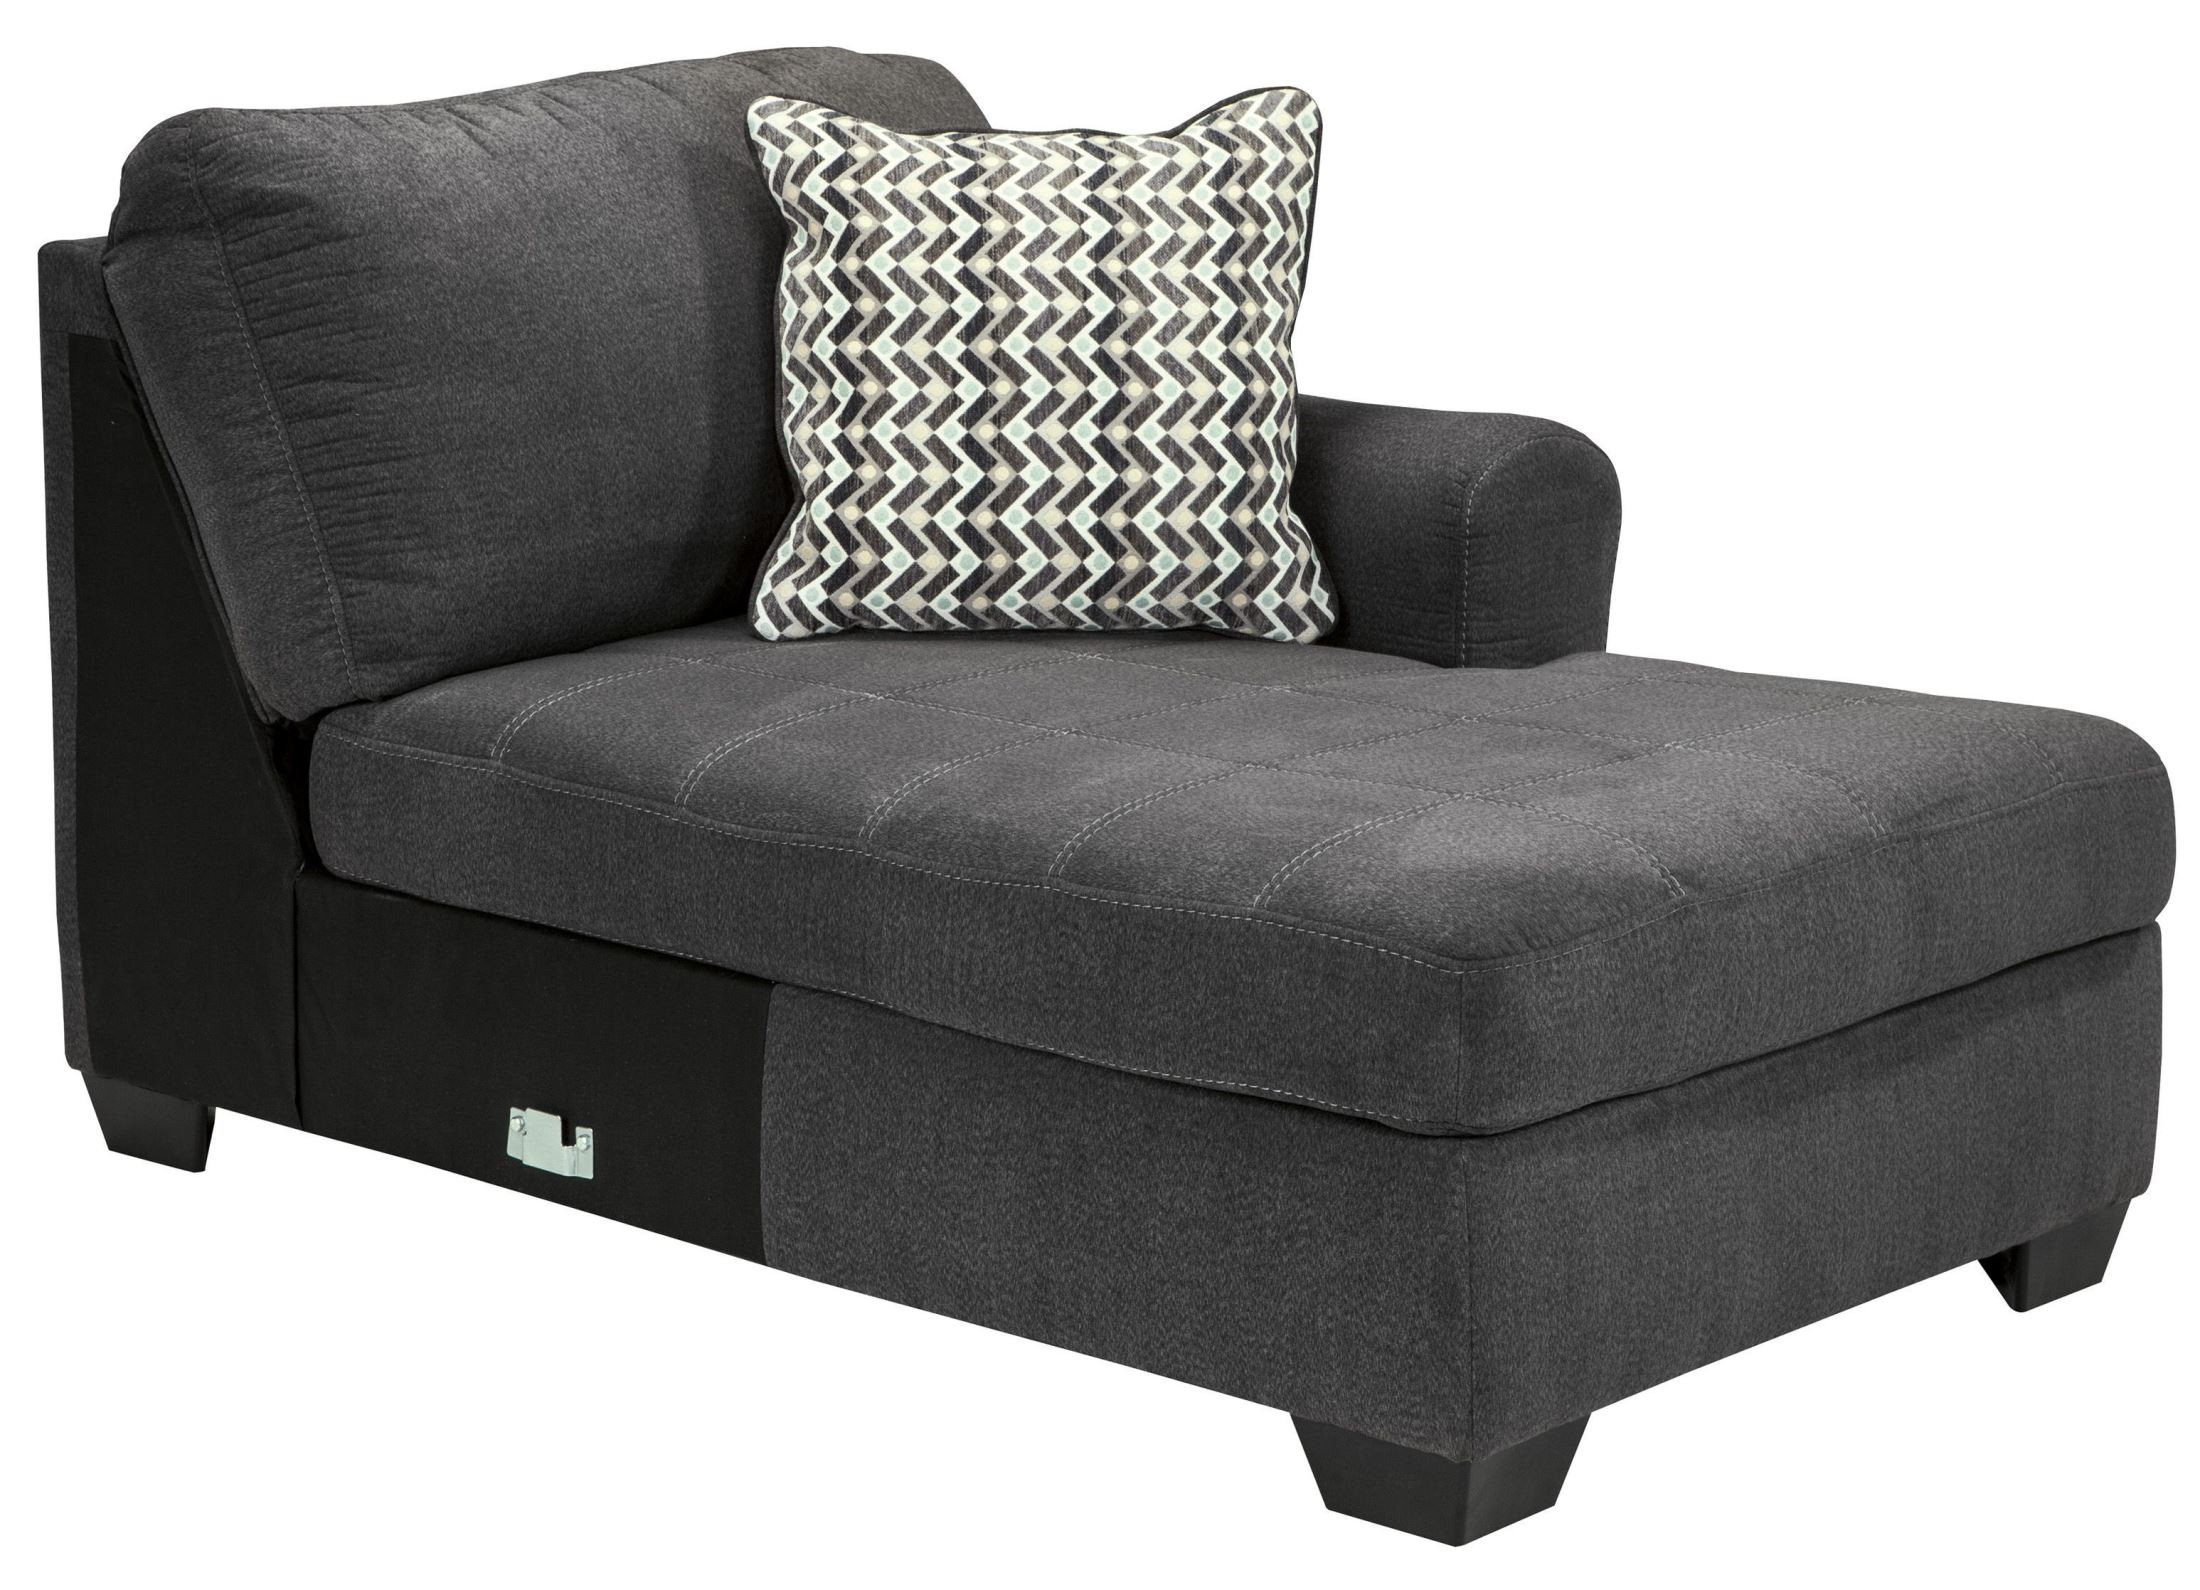 Sorenton Slate Laf Sectional From Ashley 2860016 Coleman Furniture